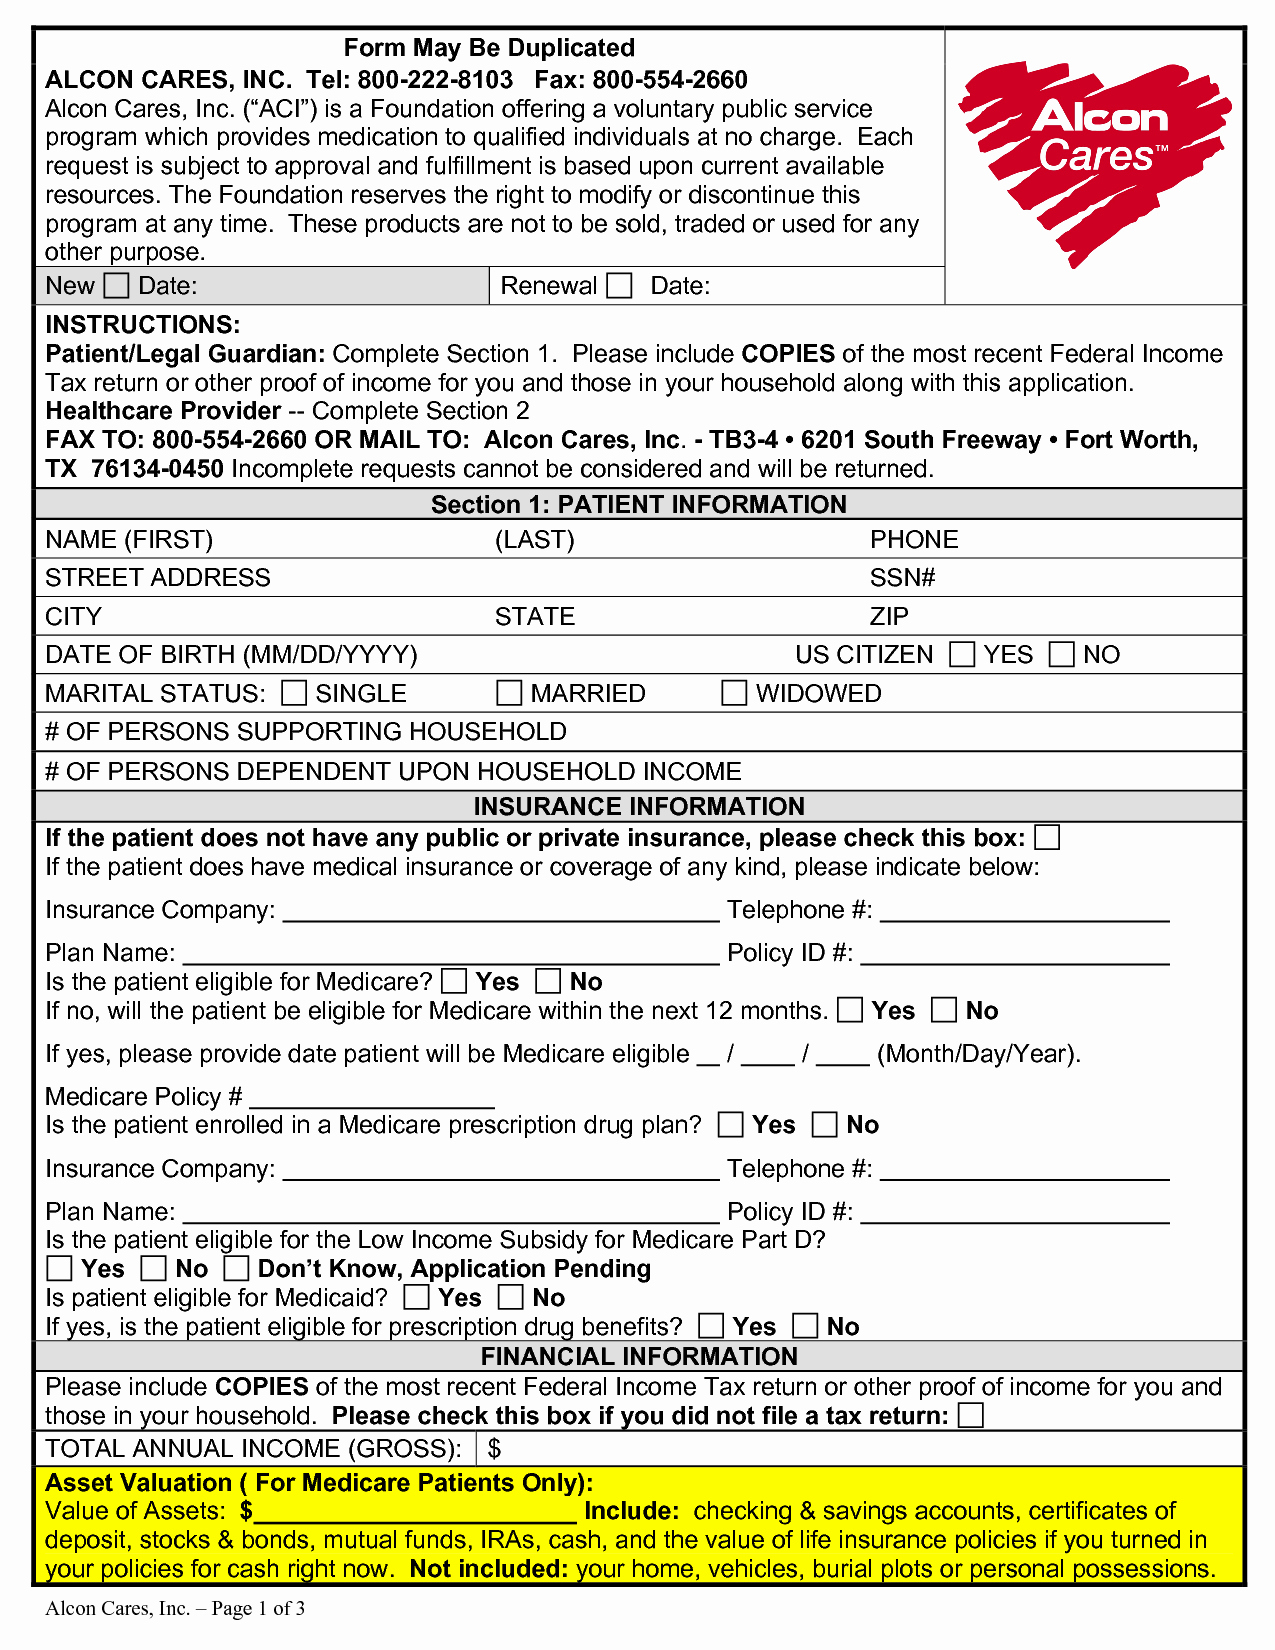 Free Durable Power Of Attorney Forms To Print Florida | Papers And Forms - Free Printable Power Of Attorney Form Florida